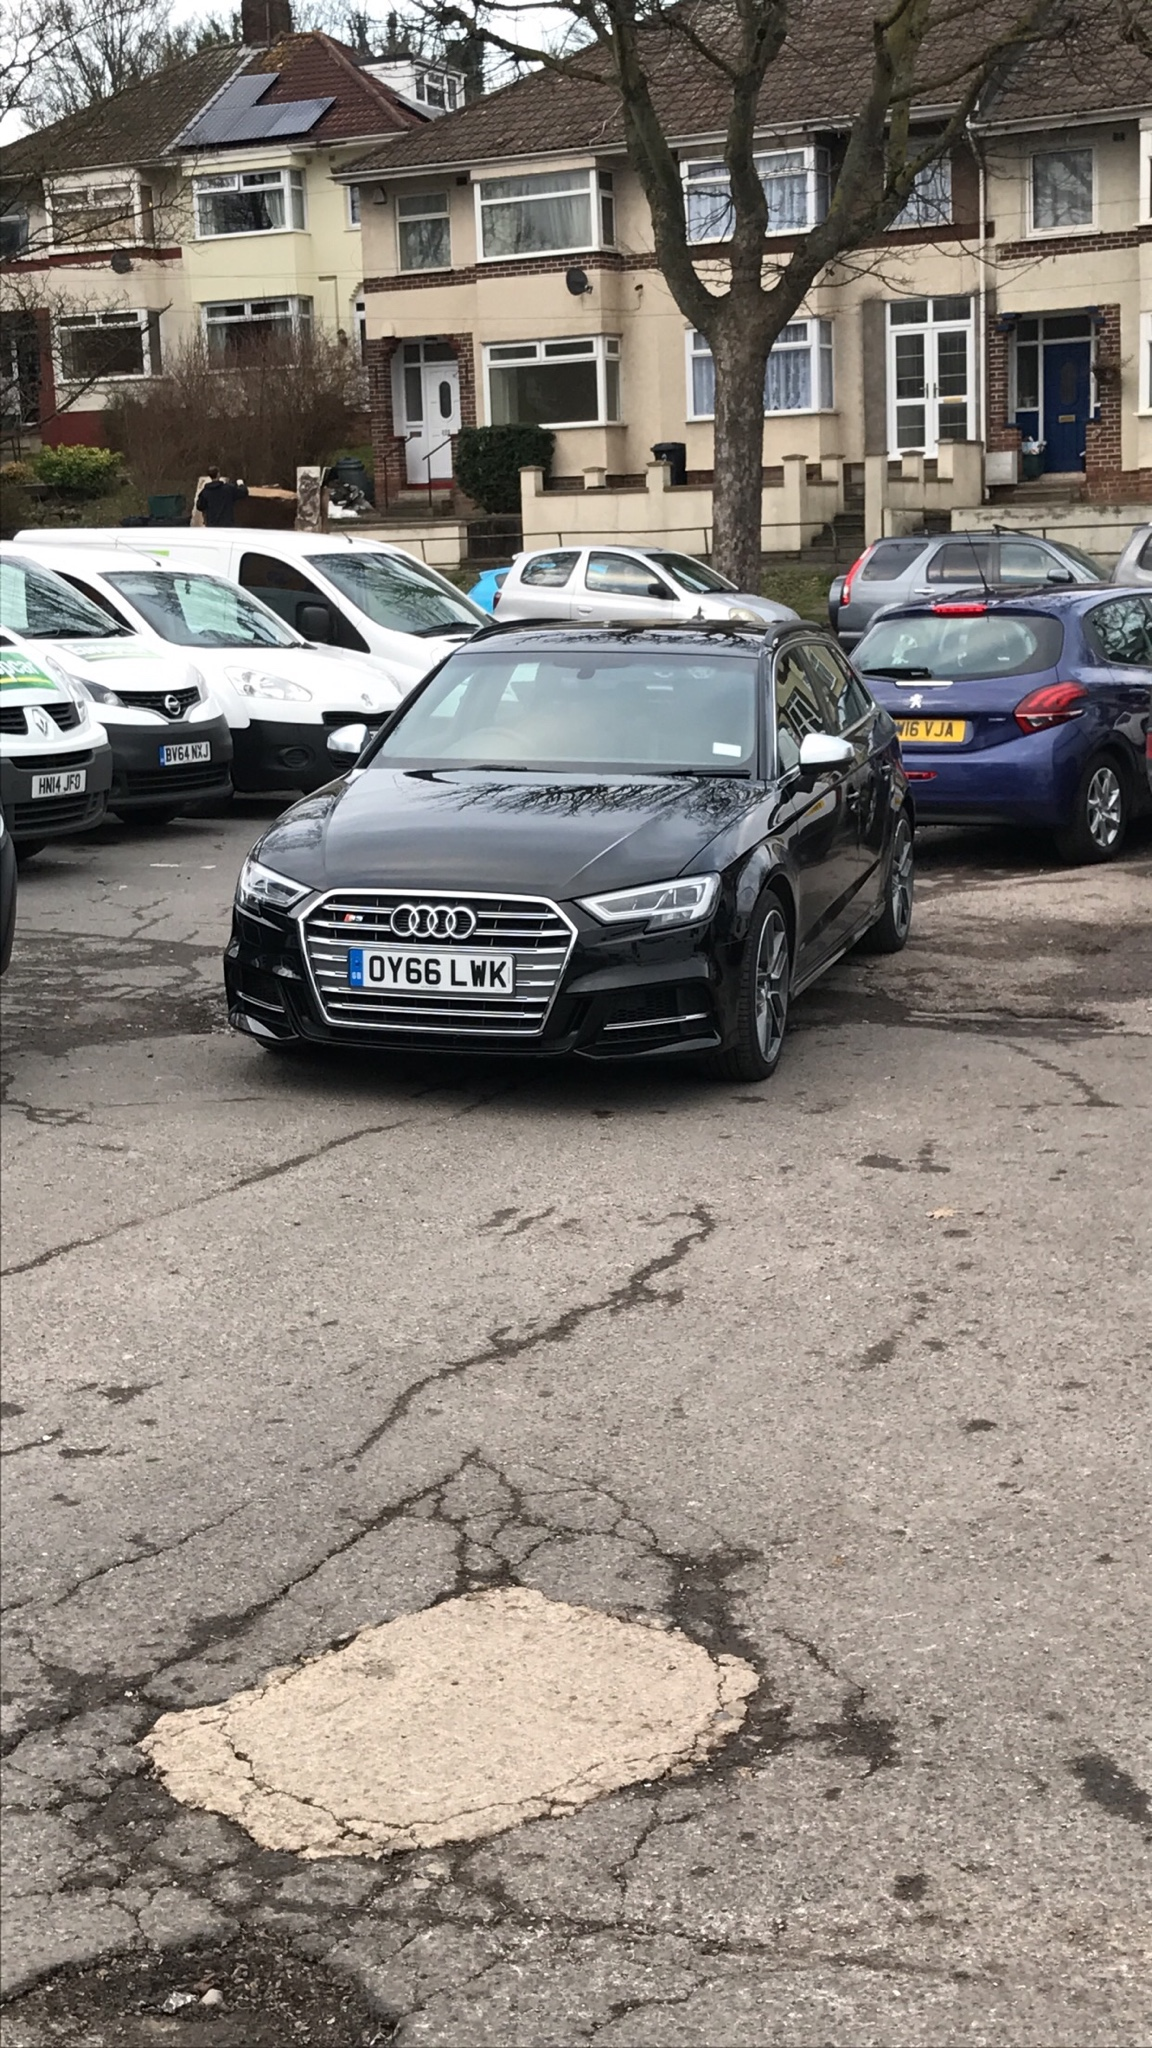 Gearbox Malfunction, what should I expect from Audi? S3, 6